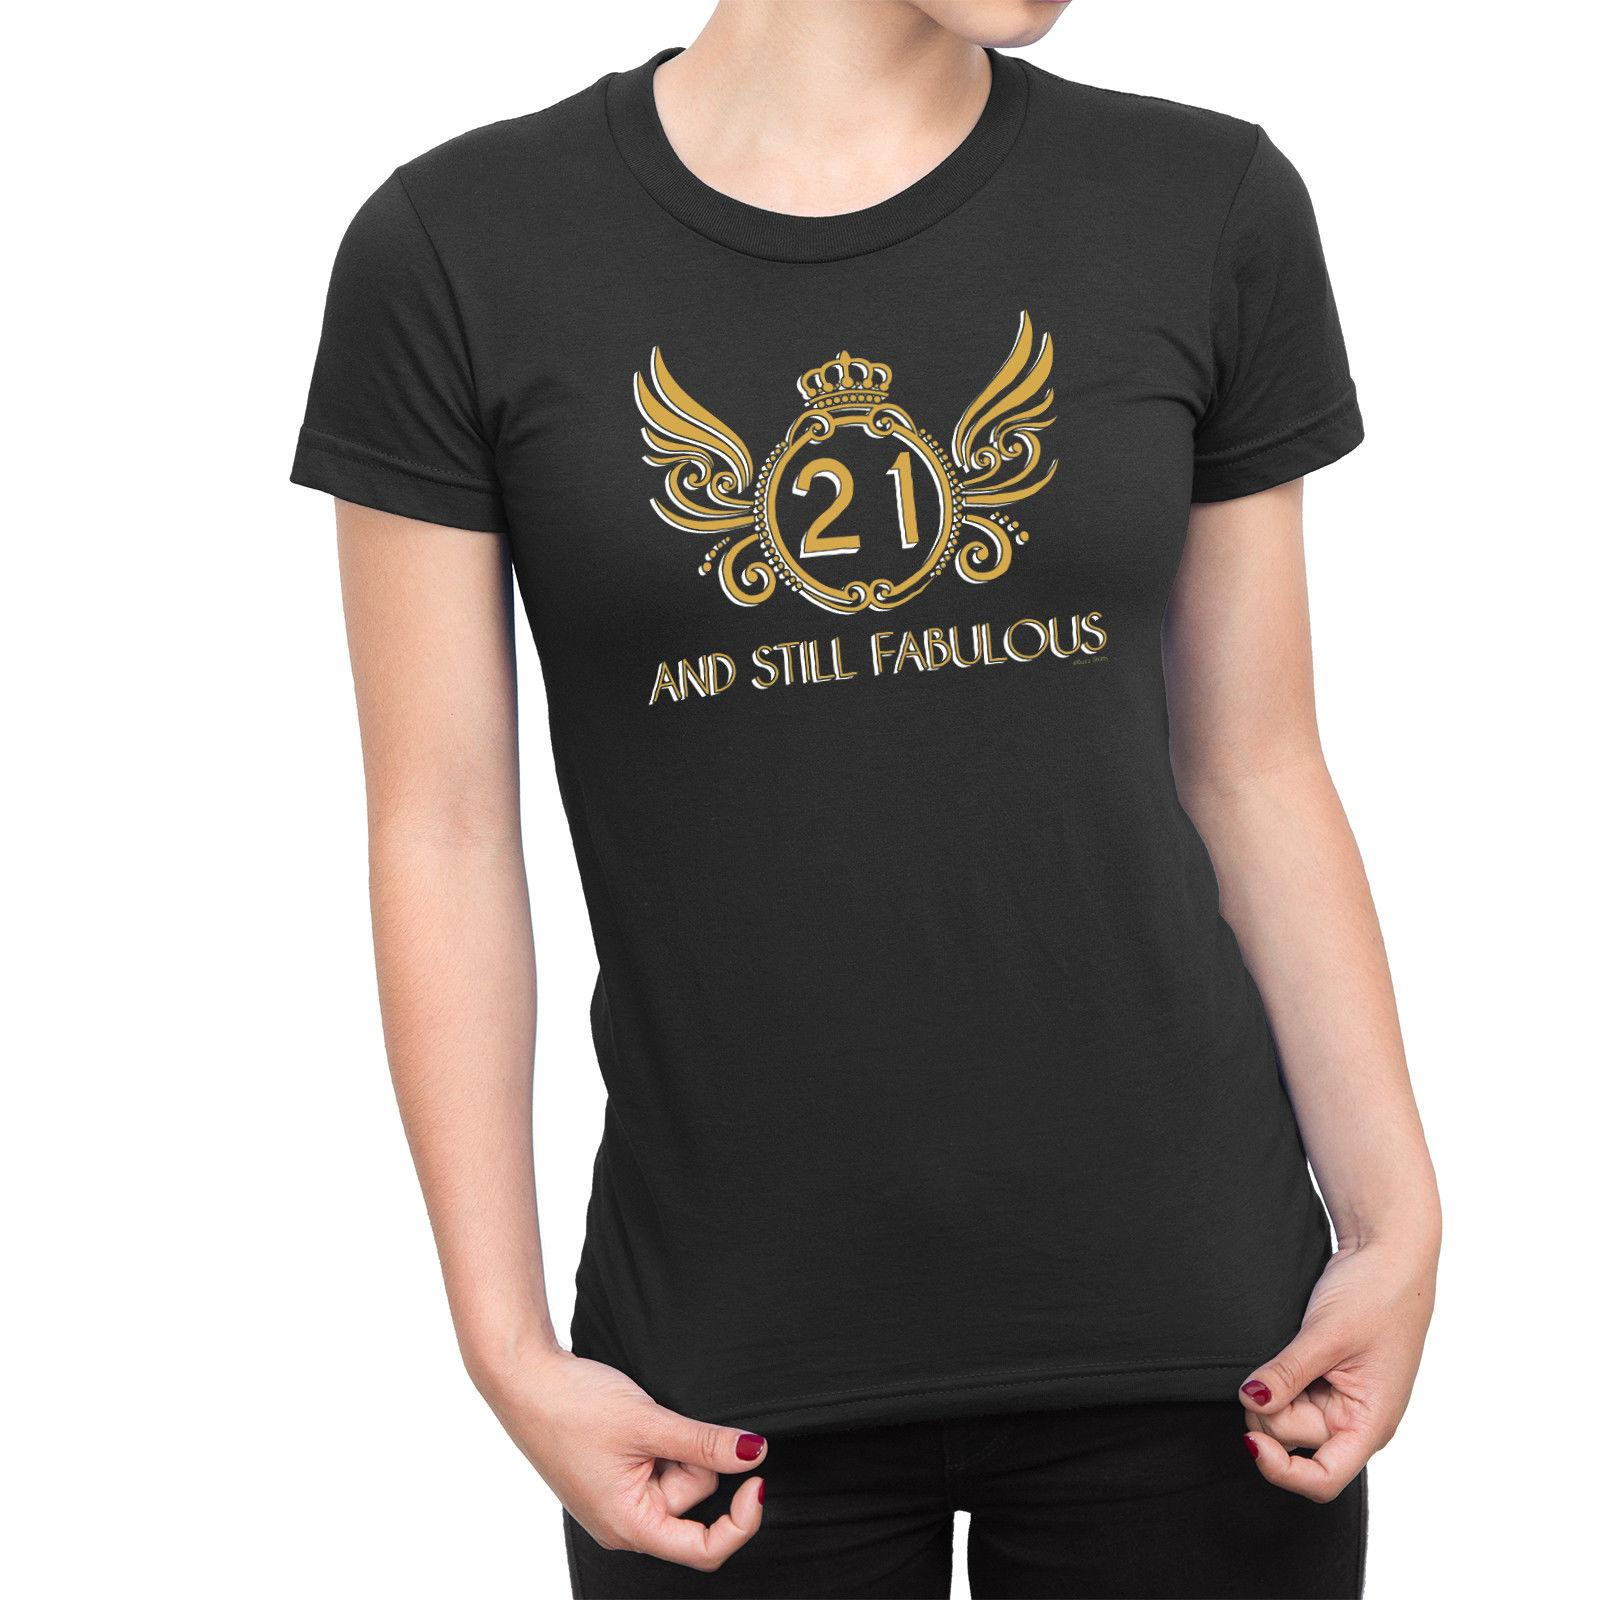 Details Zu Ladies 21st BIRTHDAY TShirt FABULOUS GOLD 21 Years Old Gift Twenty One T Shirts Shop Online Of From Lukehappy14 1296